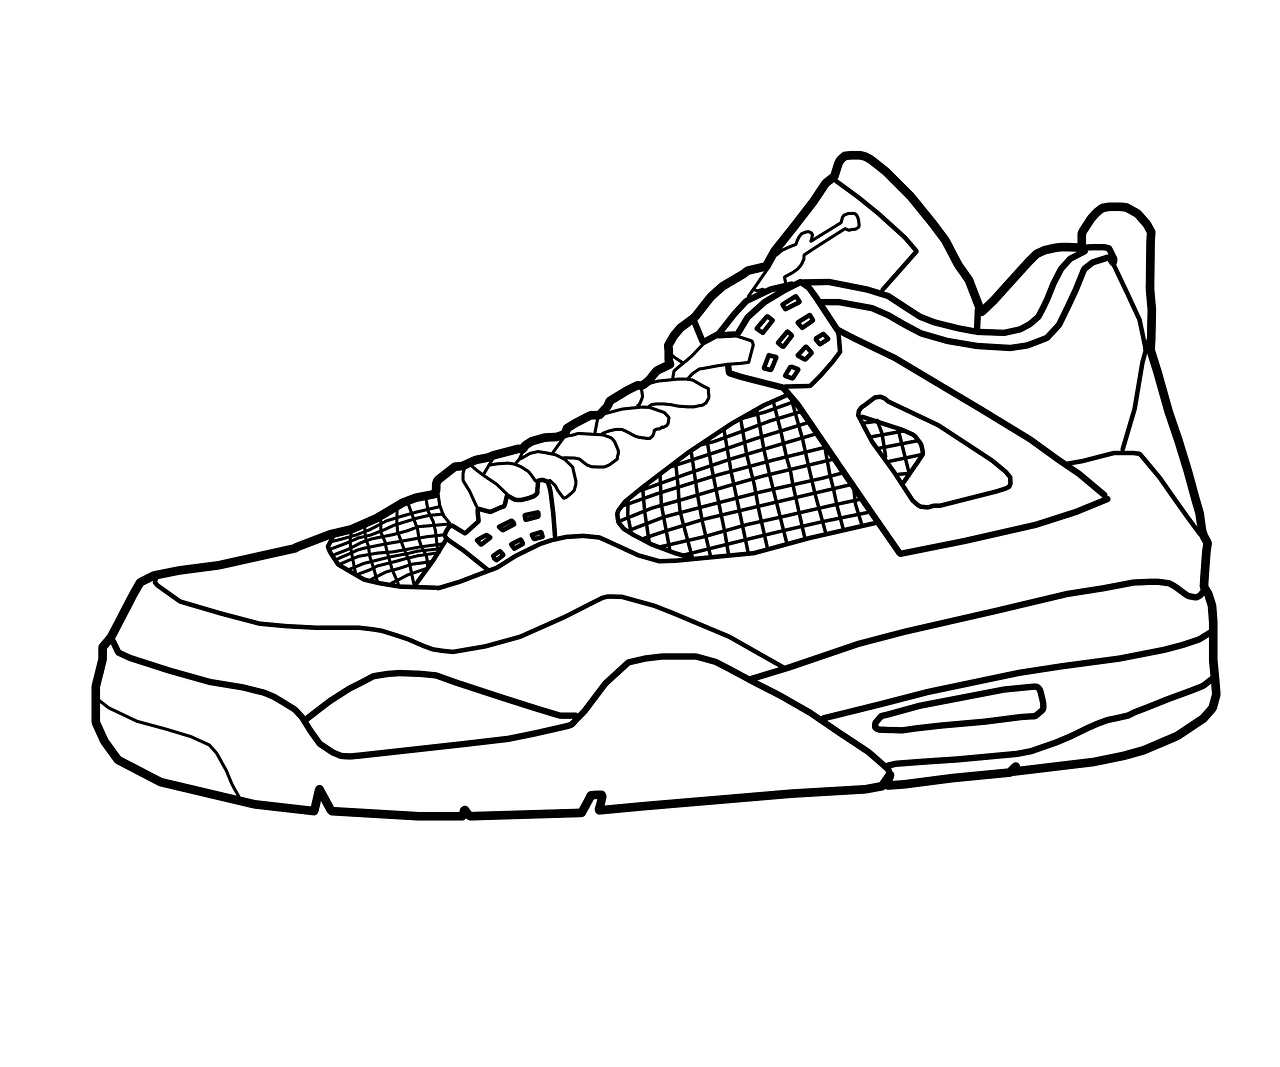 Coloring pages shoes - Drawing Jordans Shoes Coloring Pages